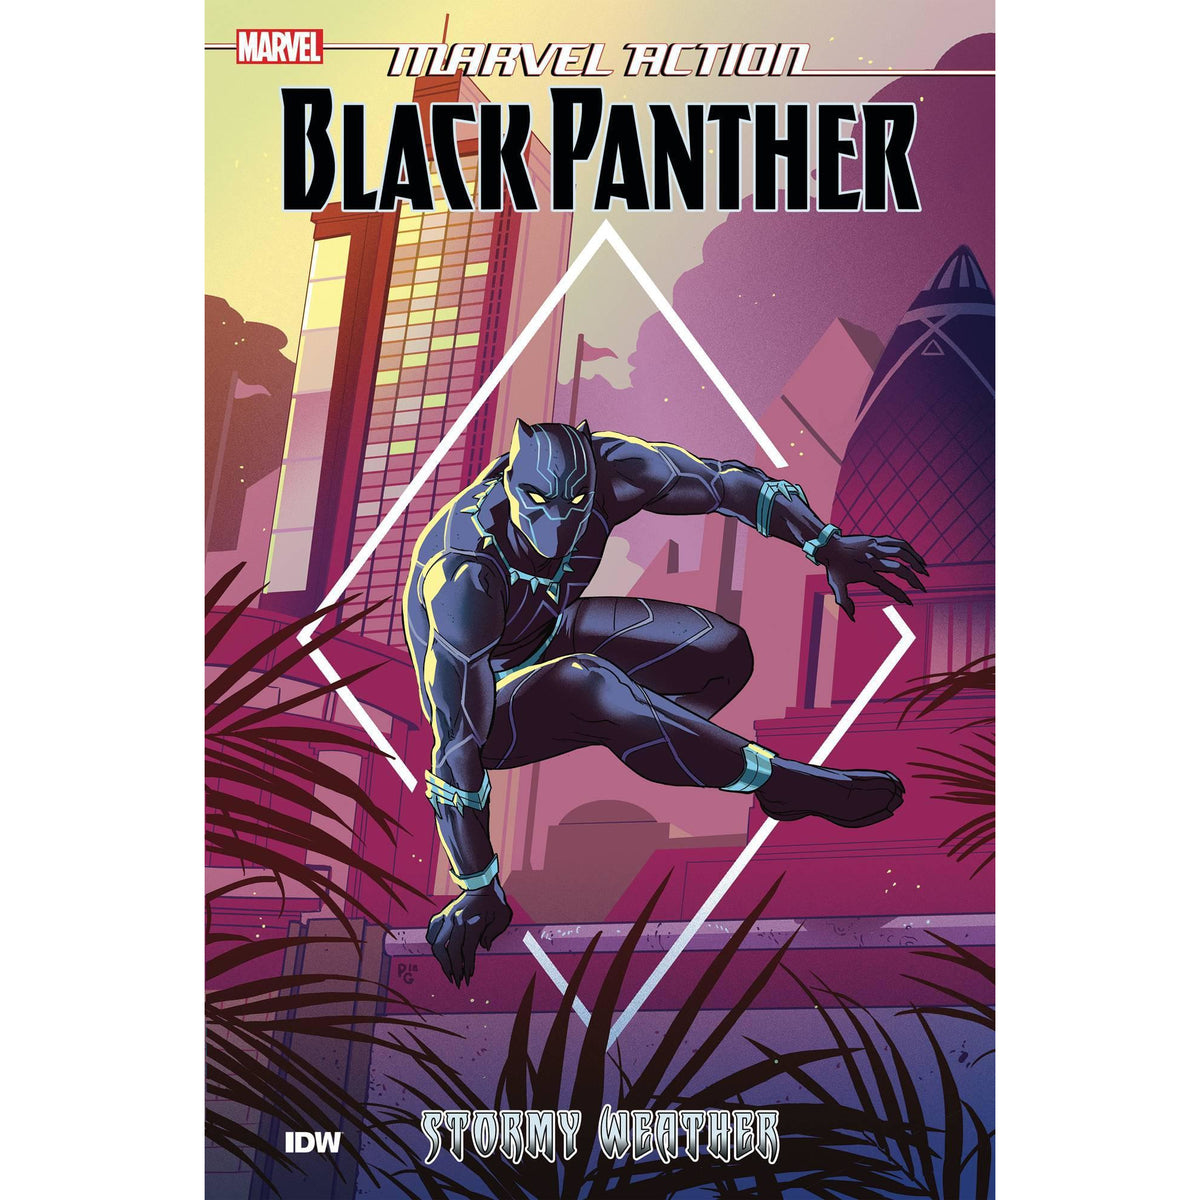 MARVEL ACTION BLACK PANTHER: BOOK 1 STORMY WEATHER